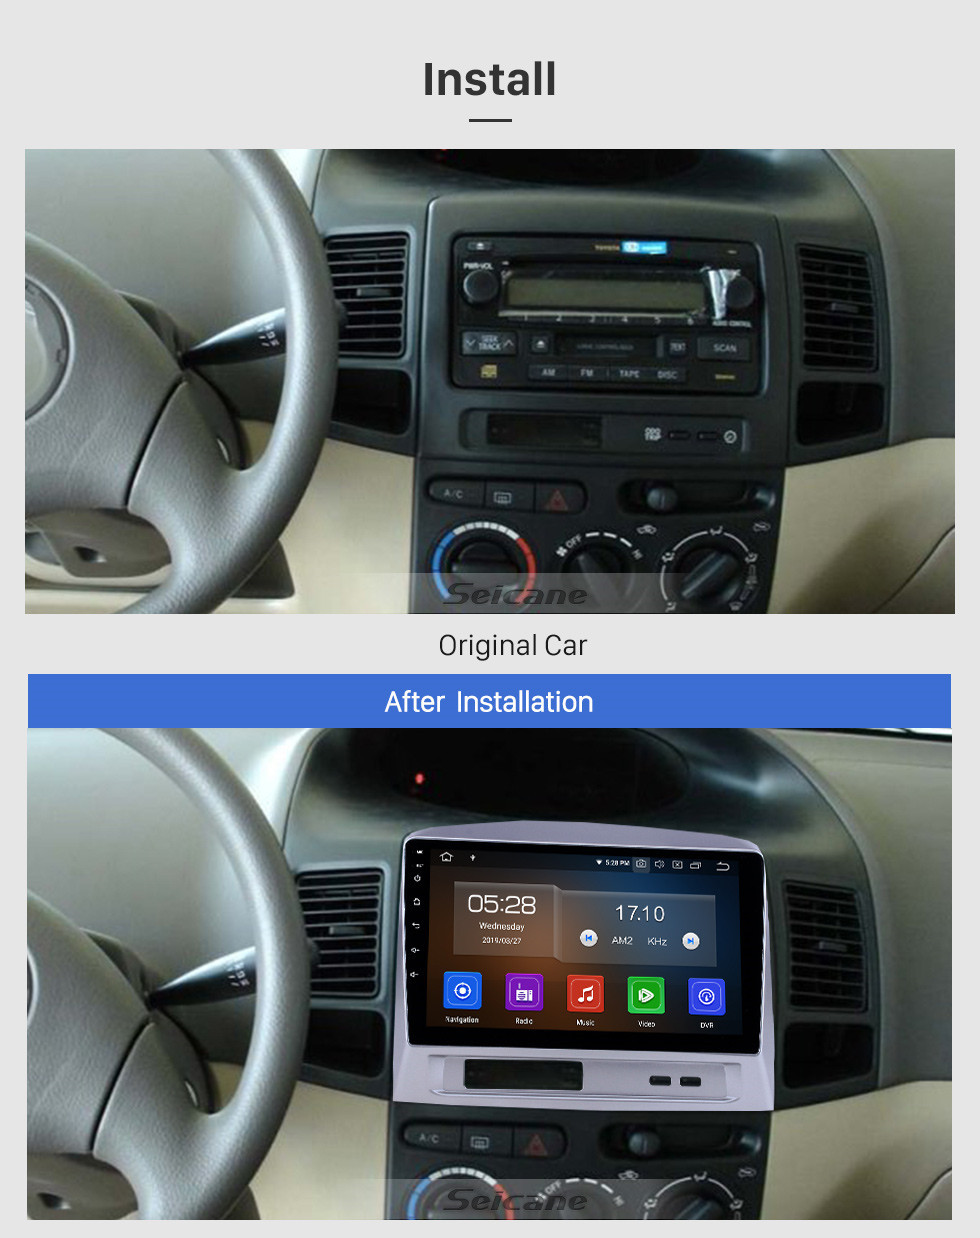 Seicane Android 10.0 9 inch GPS Navigation Radio for 2004 Toyota Vios with HD Touchscreen Carplay Bluetooth WIFI USB AUX support Mirror Link OBD2 SWC